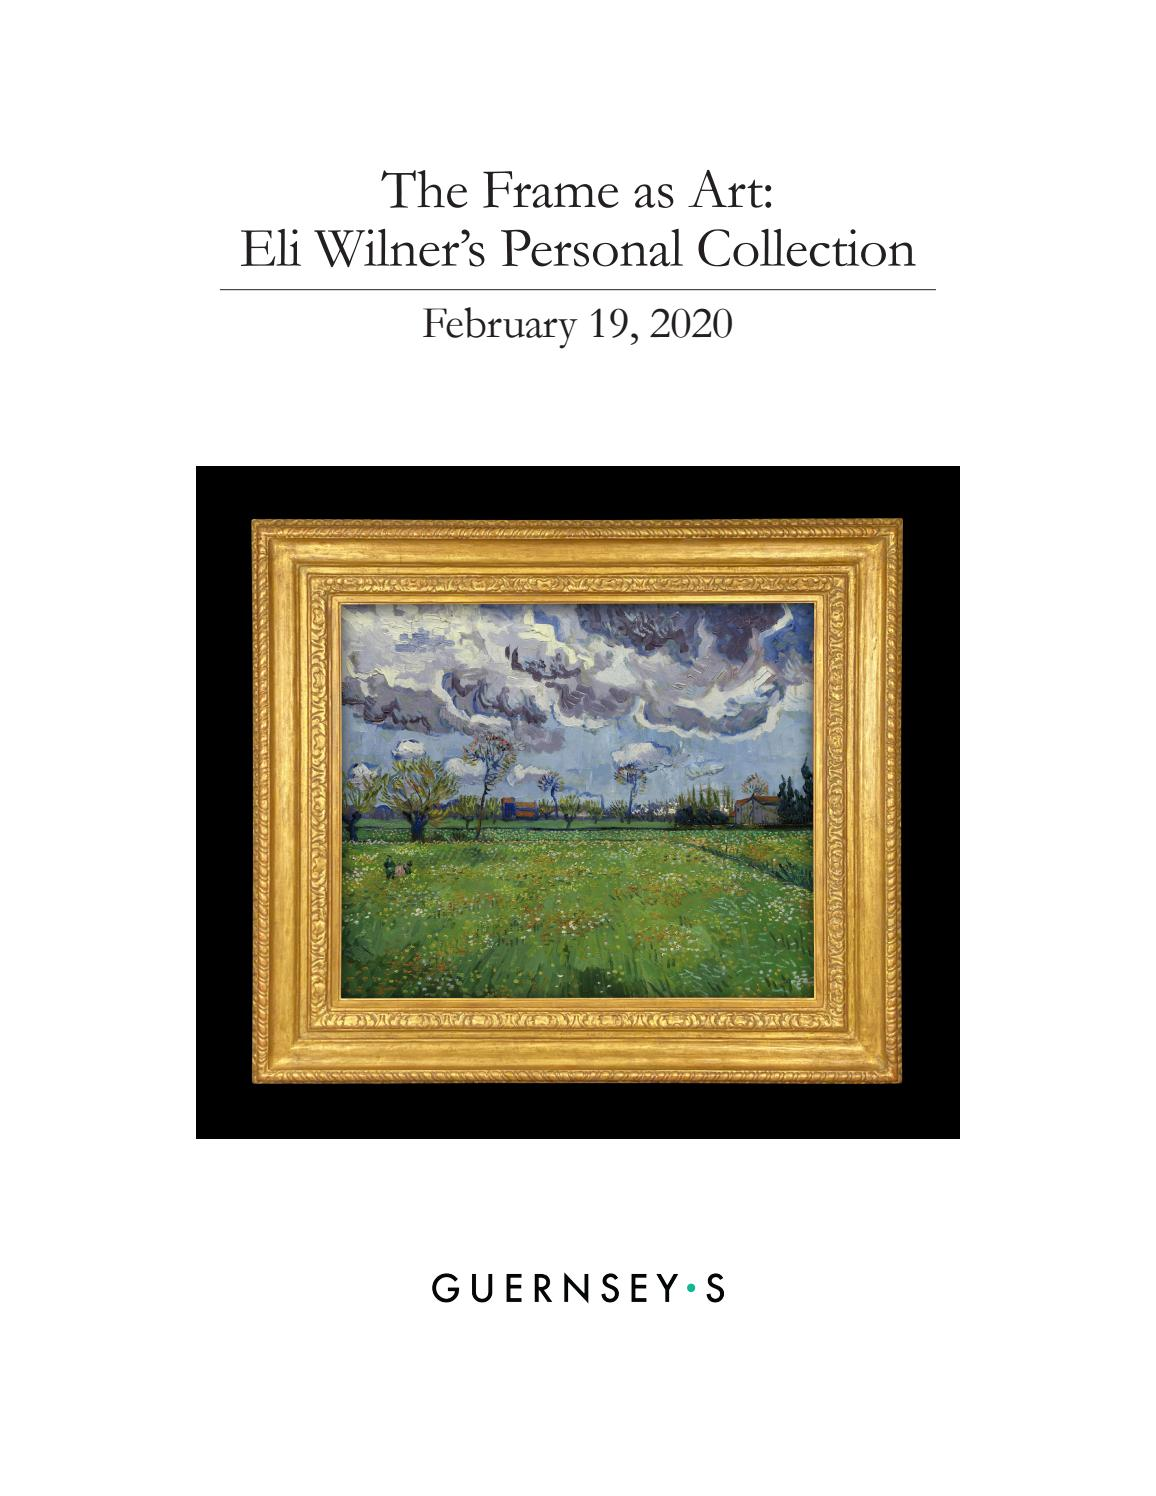 The Frame As Art Eli Wilner S Personal Collection By Guernsey S Issuu